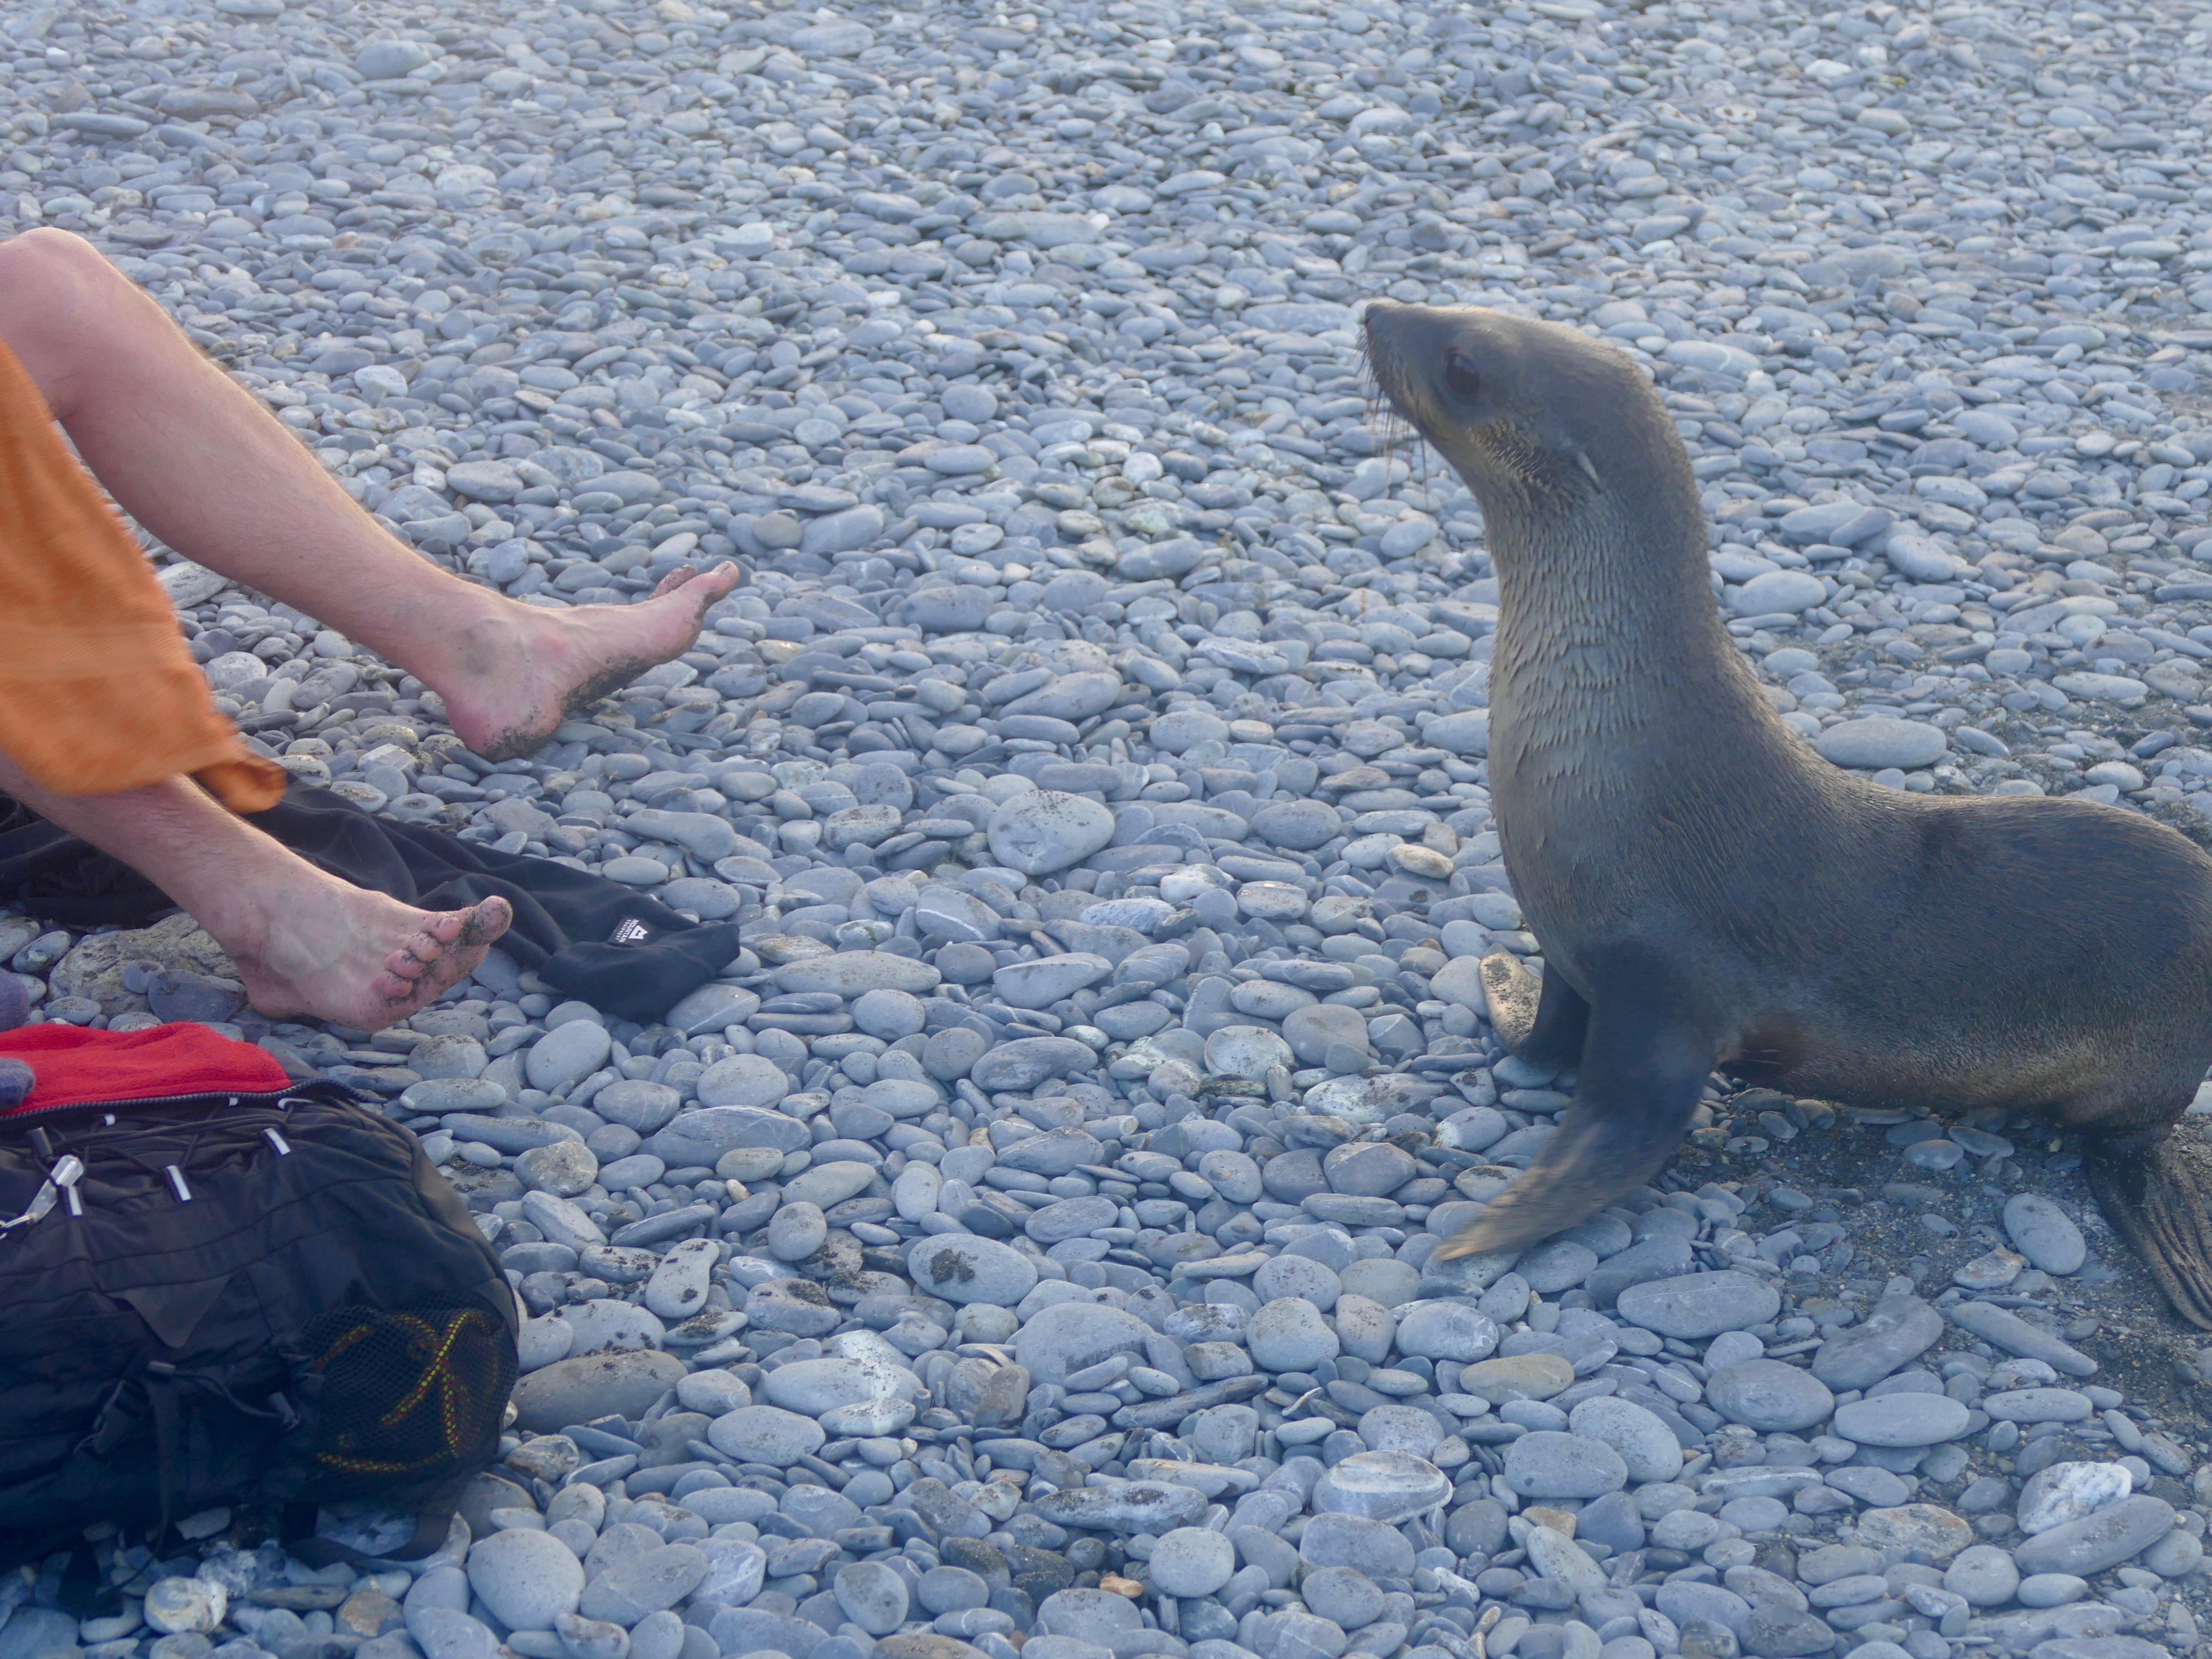 Salisbury Plain fur seal investigates the toes of a swimmer who was all smiles off camera